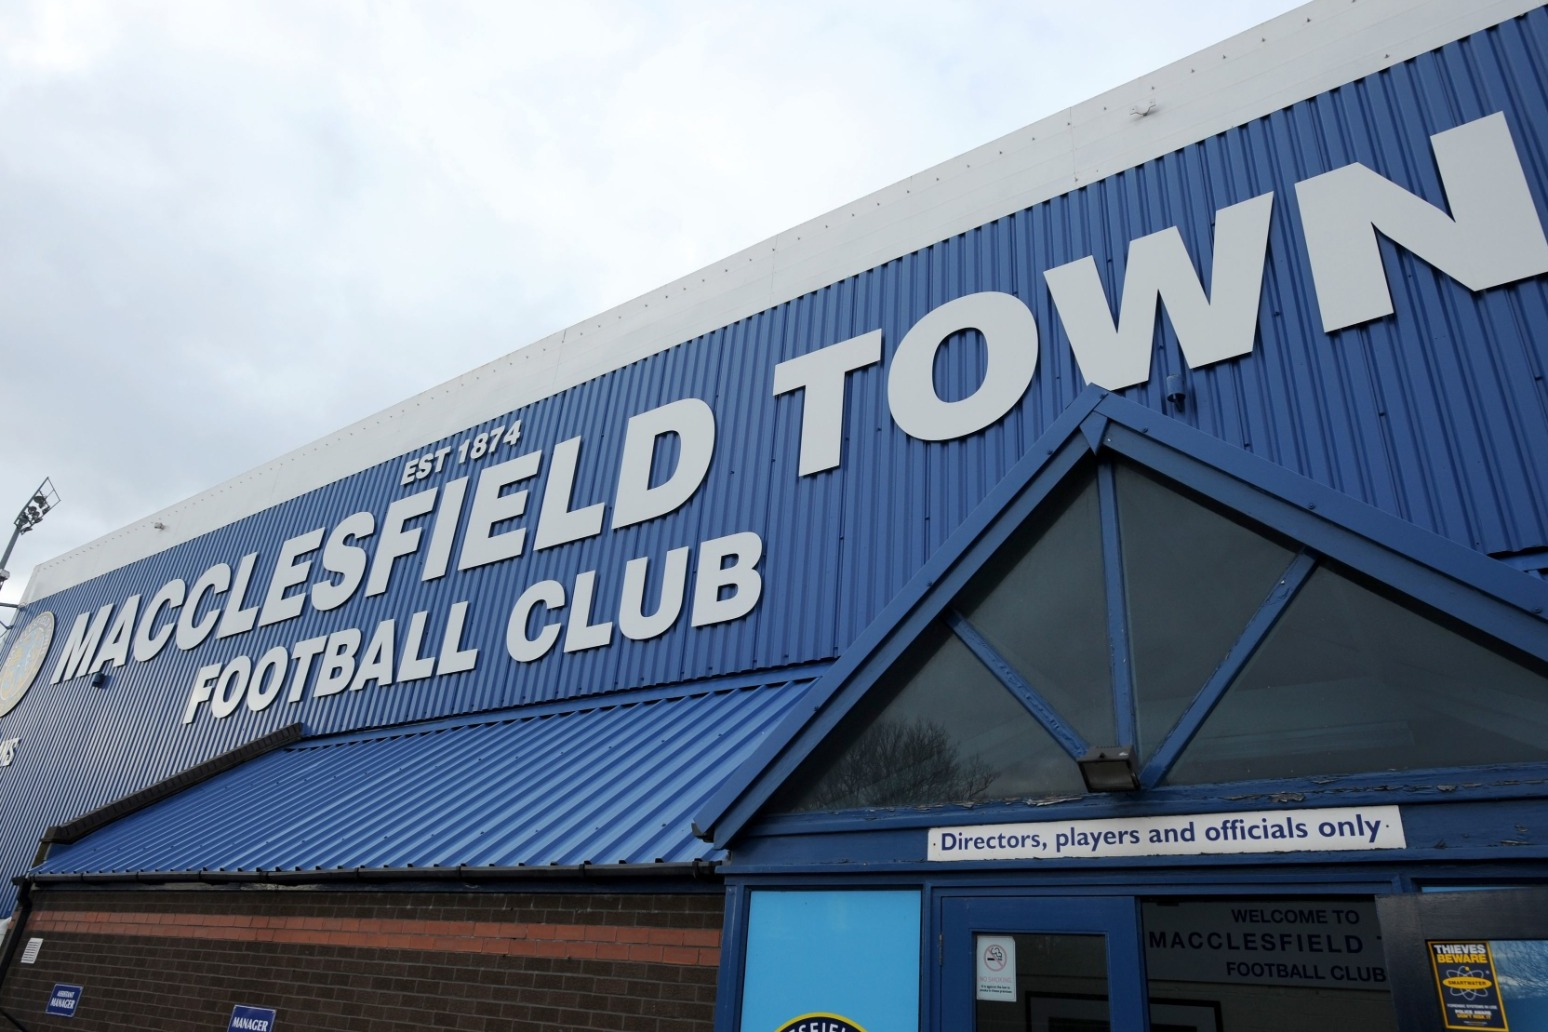 MACCLESFIELD DEDUCTED SIX POINTS